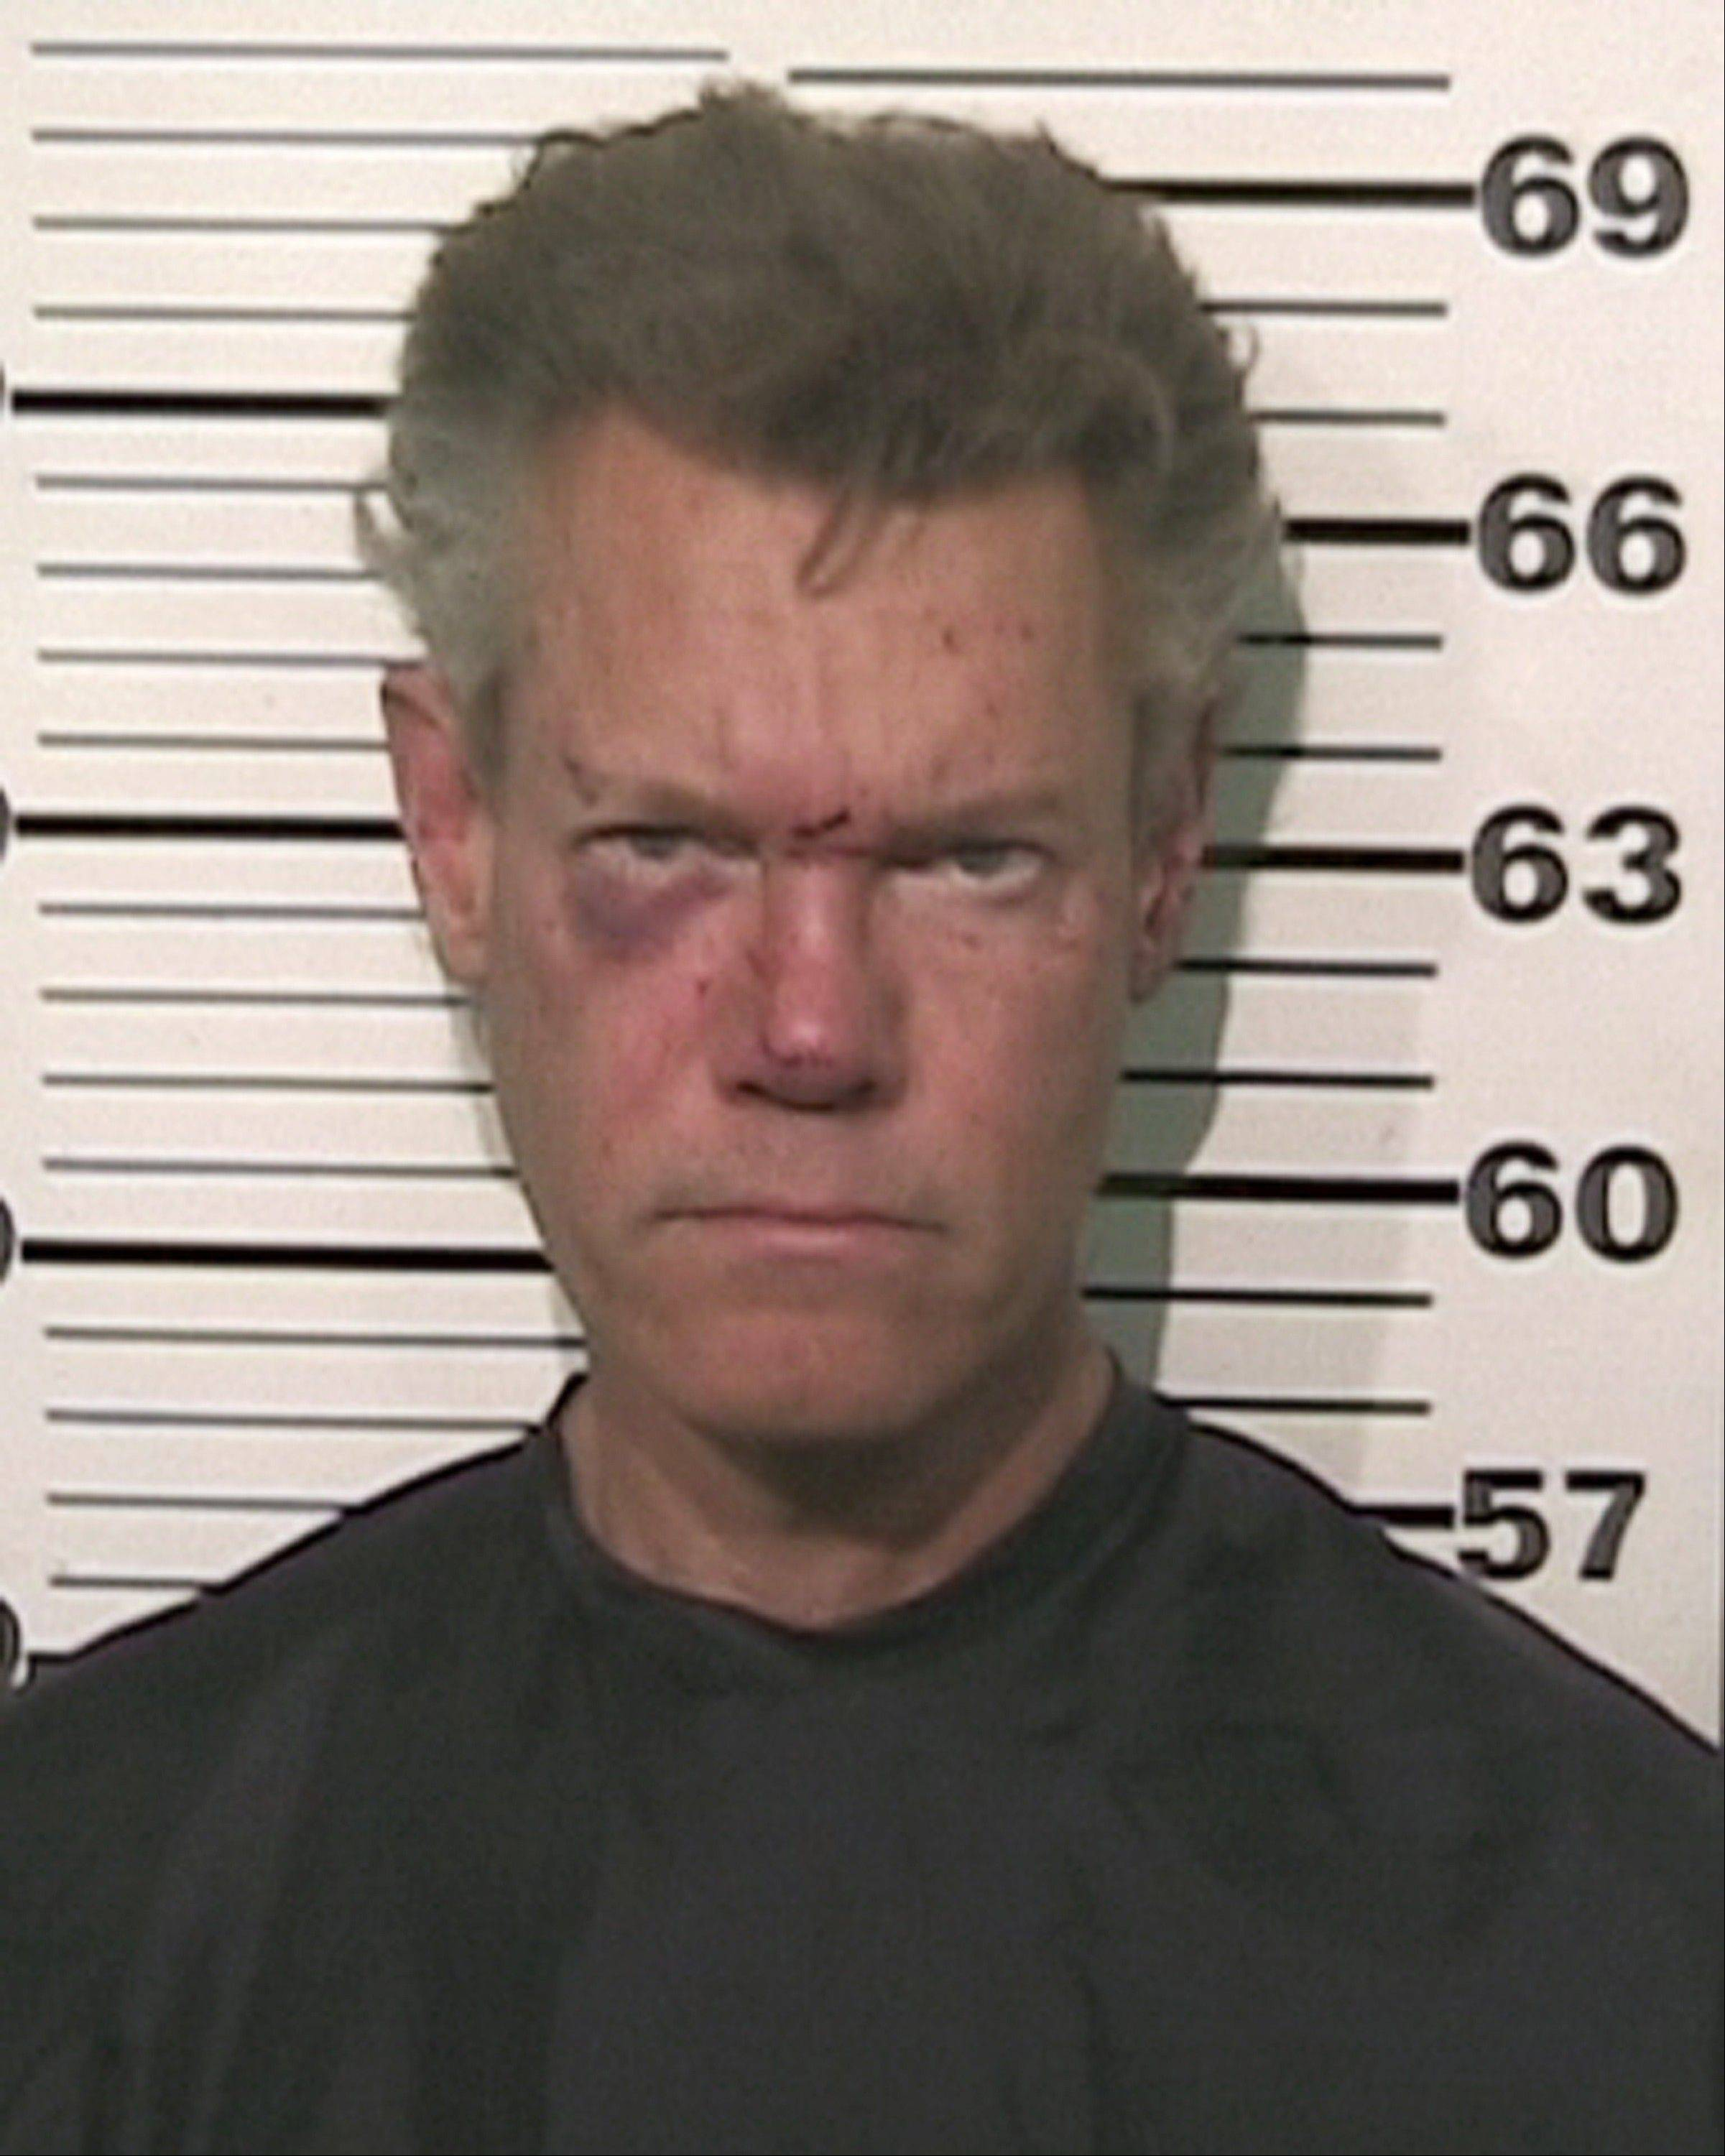 A prosecutor says the country music star Randy Travis is expected to enter a guilty plea in a drunken-driving case in North Texas.